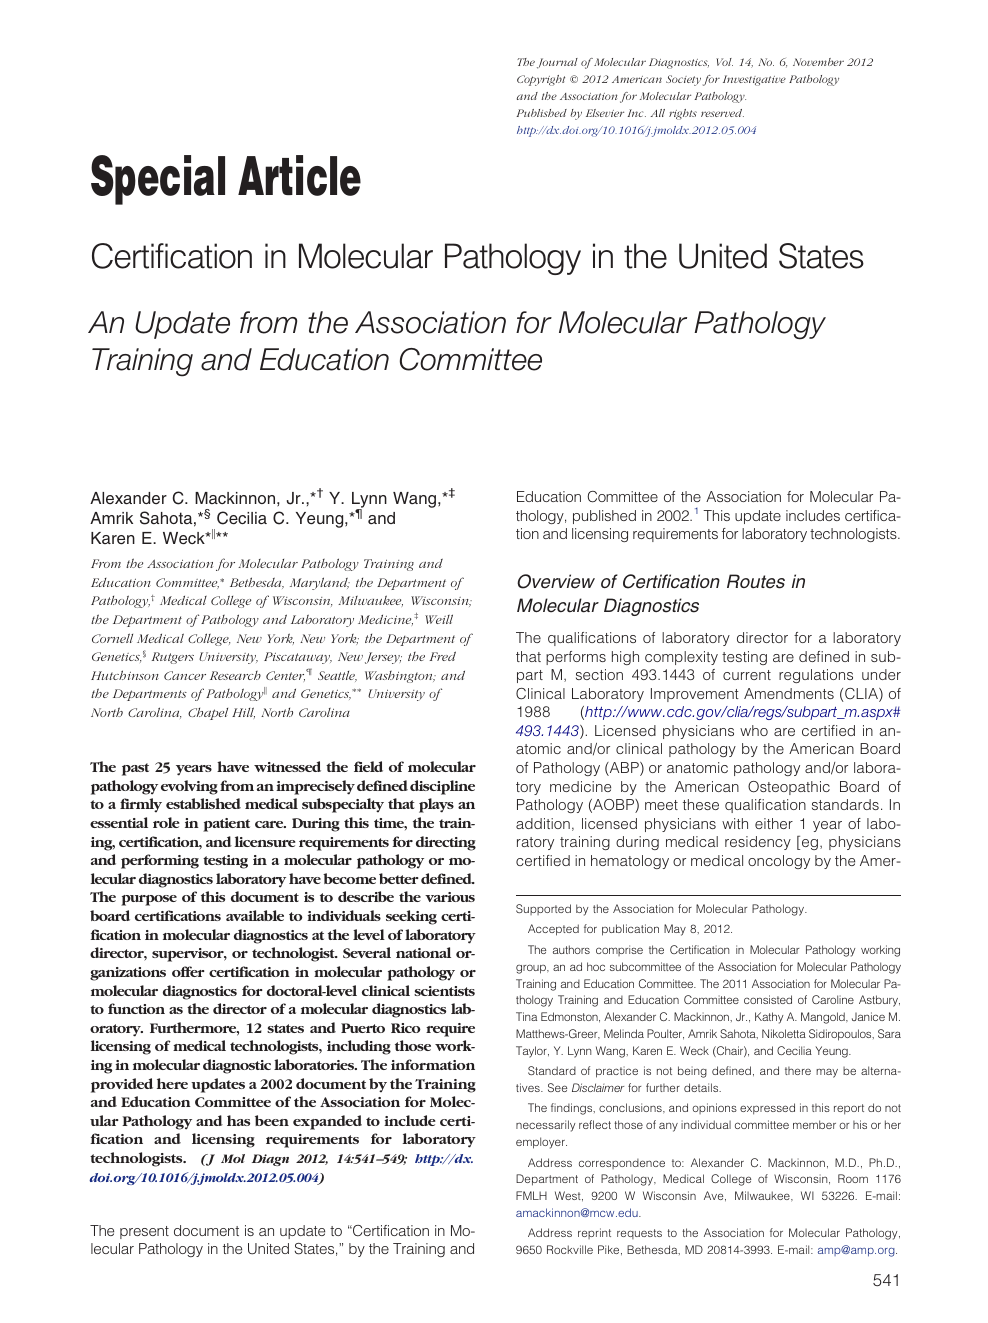 Certification in Molecular Pathology in the United States